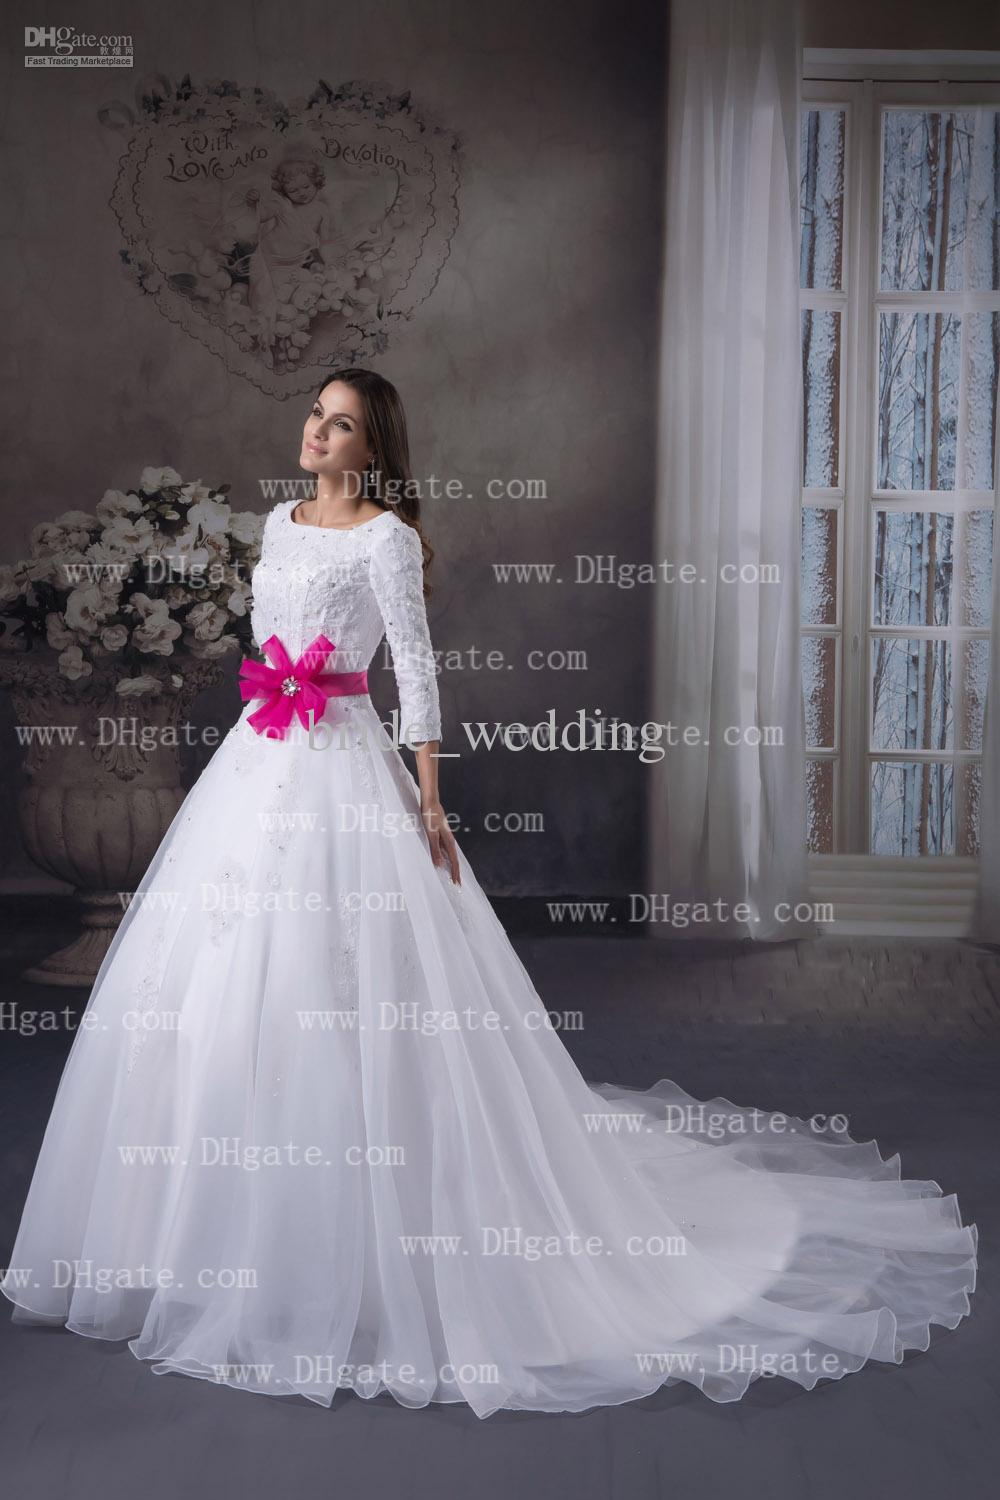 gallery of wedding dress february 2014